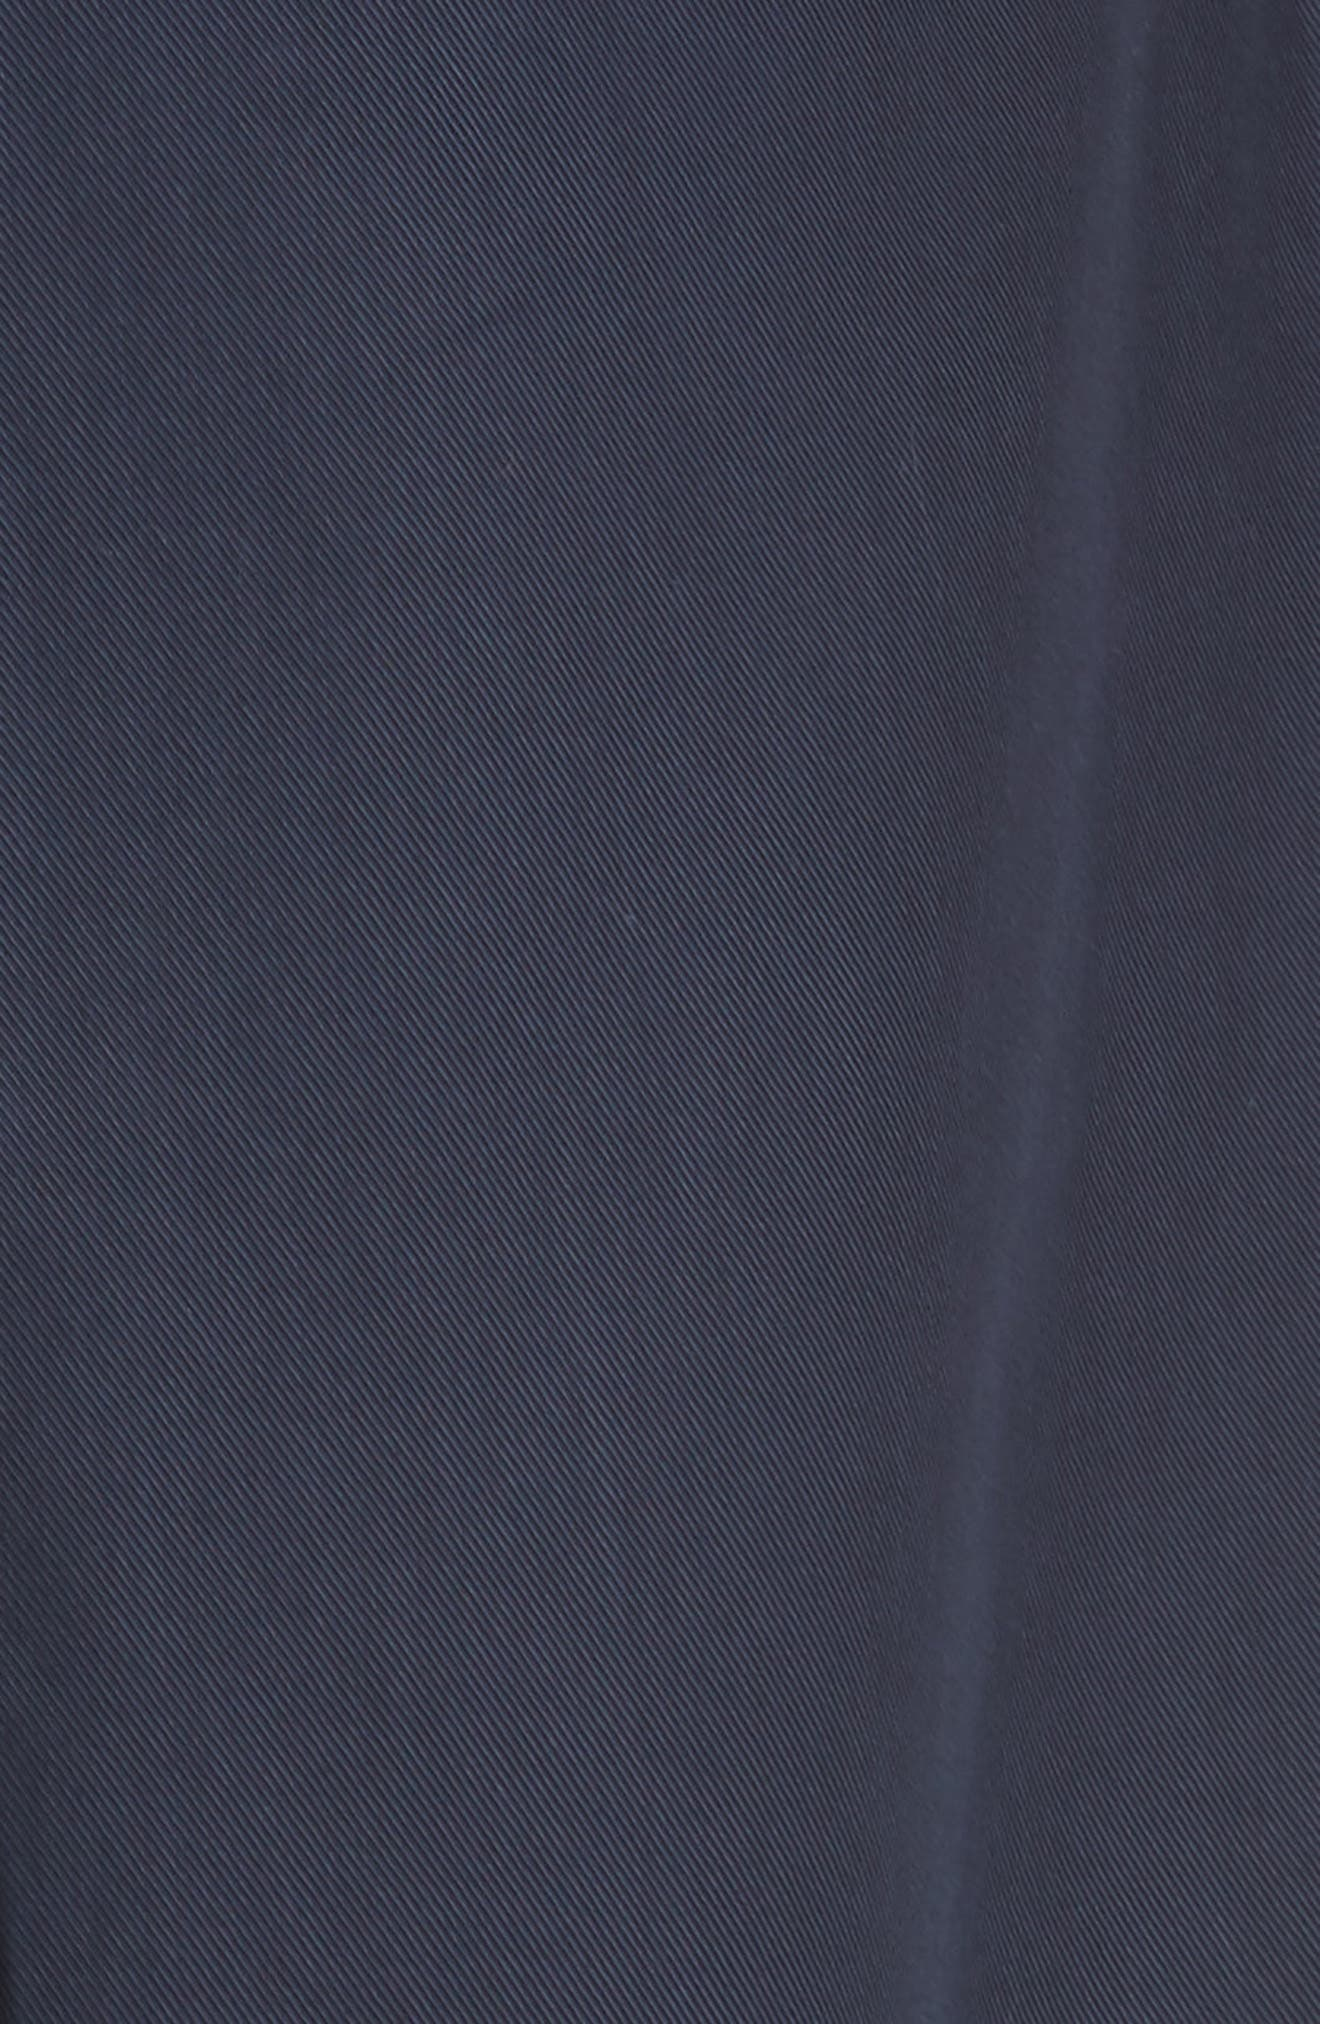 Cuffed Crop Pants,                             Alternate thumbnail 5, color,                             Navy Blue